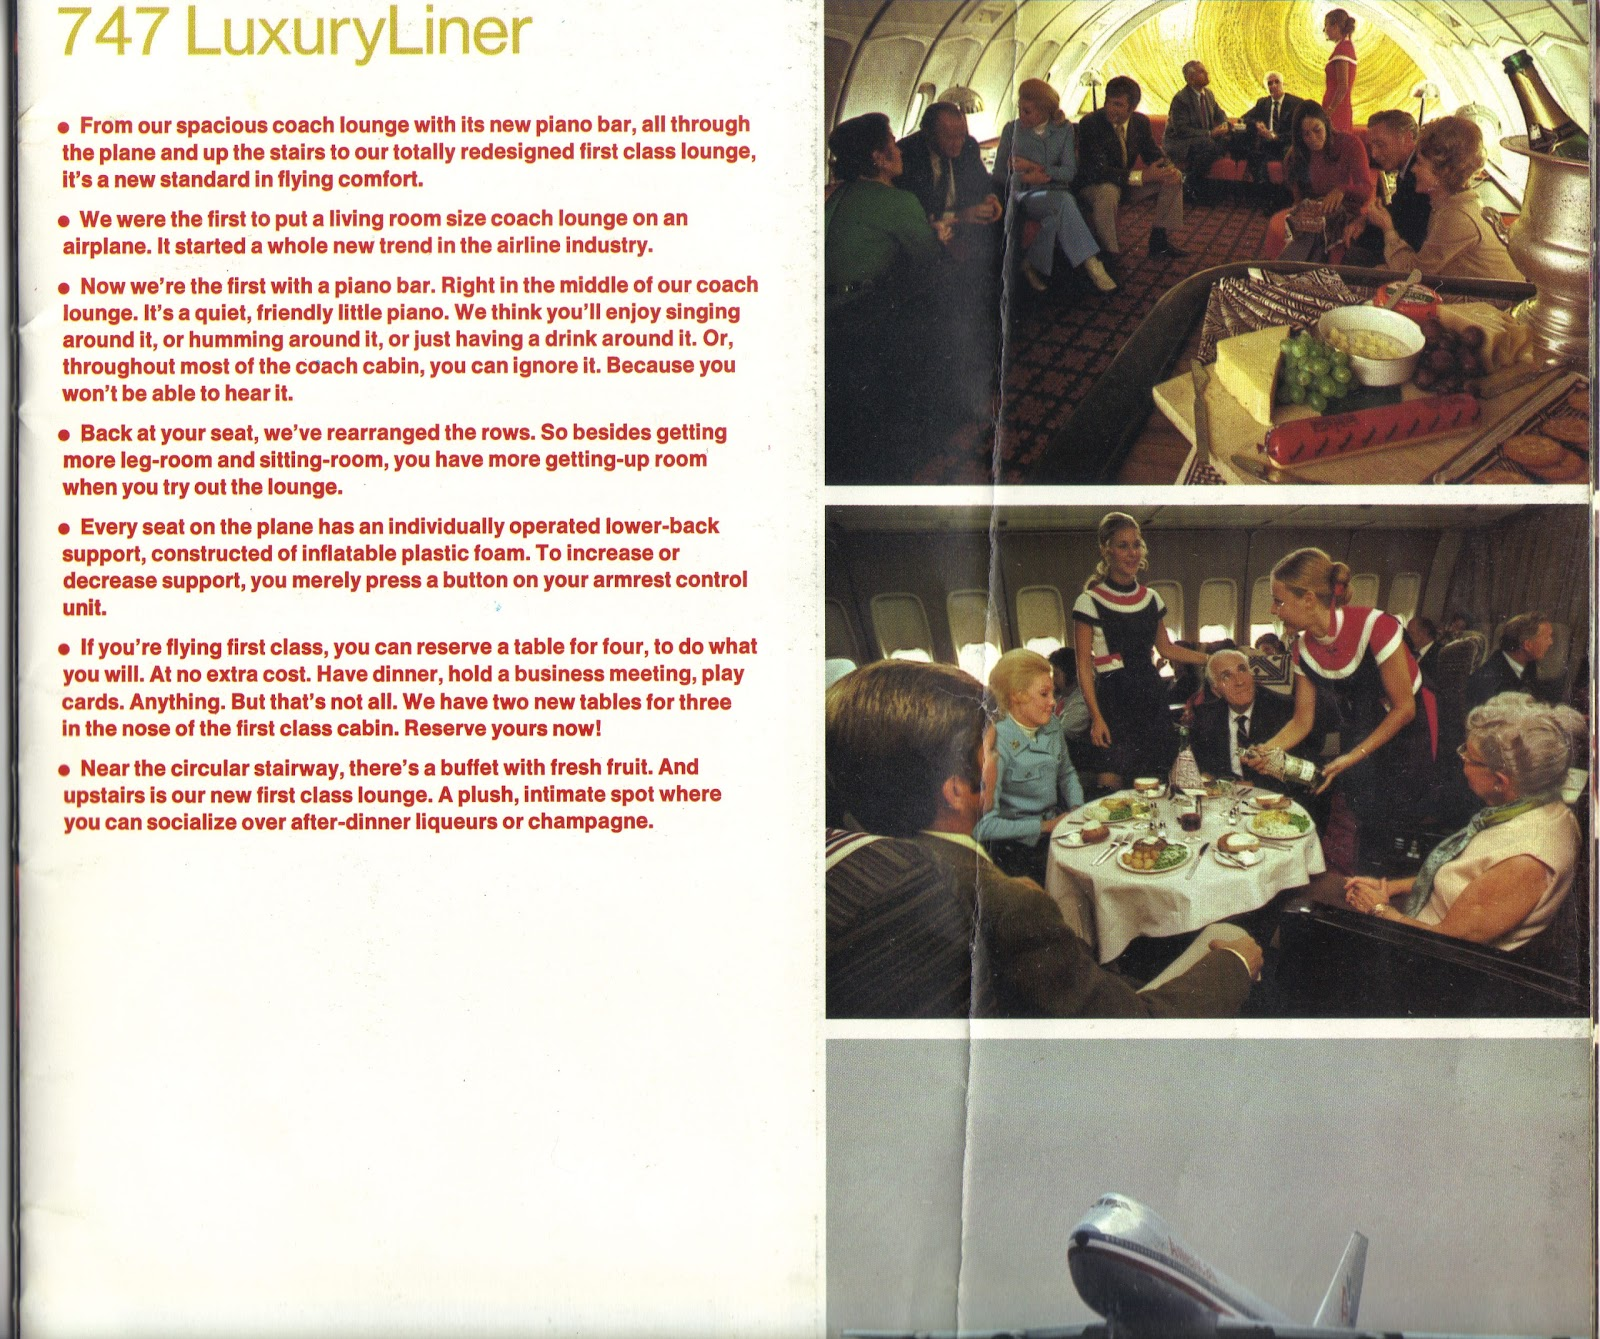 Most Luxury Airlines American Airlines 747 Luxury